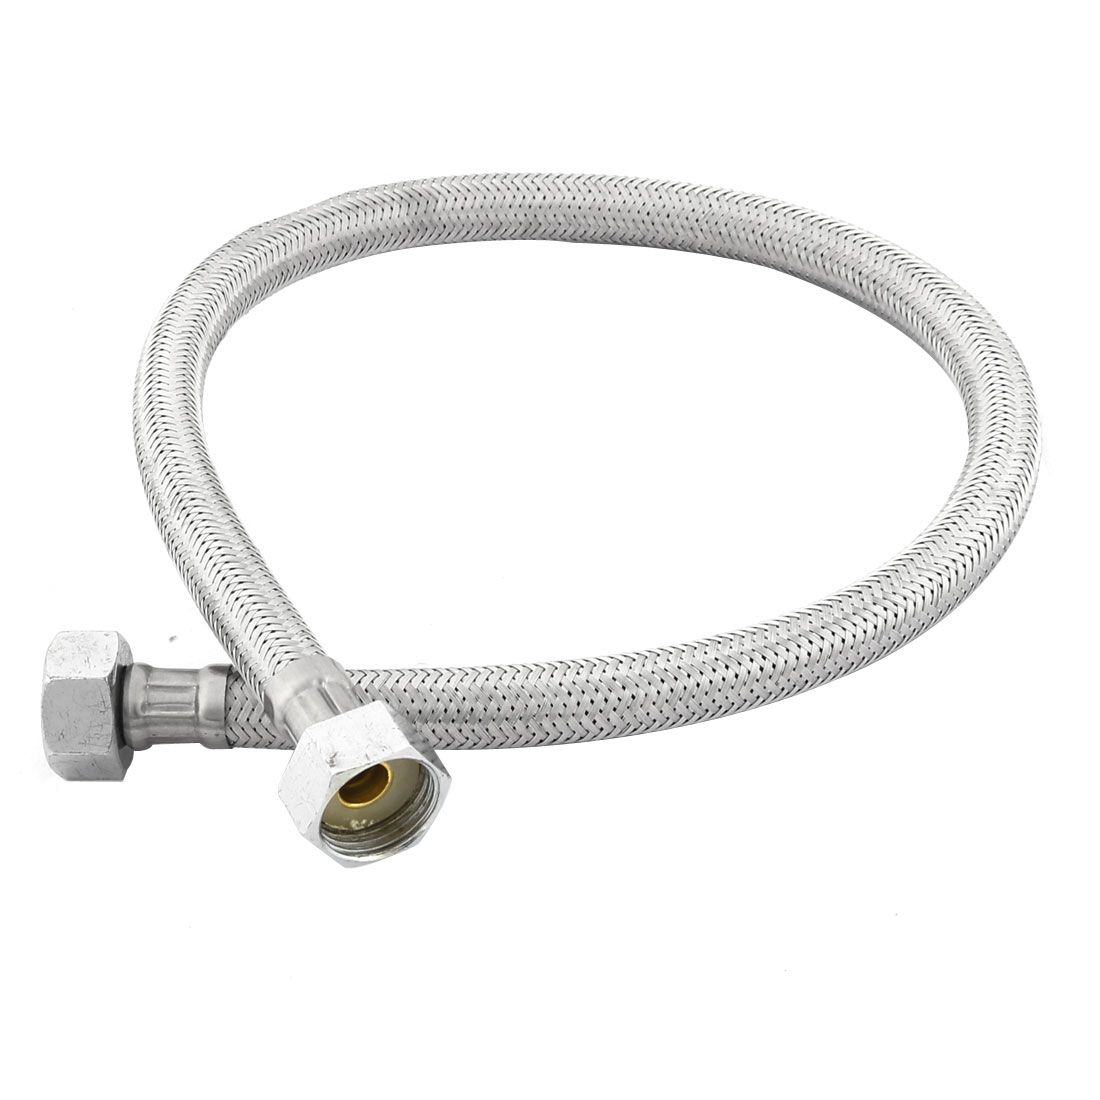 Home Bathroom Shower Hose 20mm Thread Stainless Steel Silver Tone 60cm Length